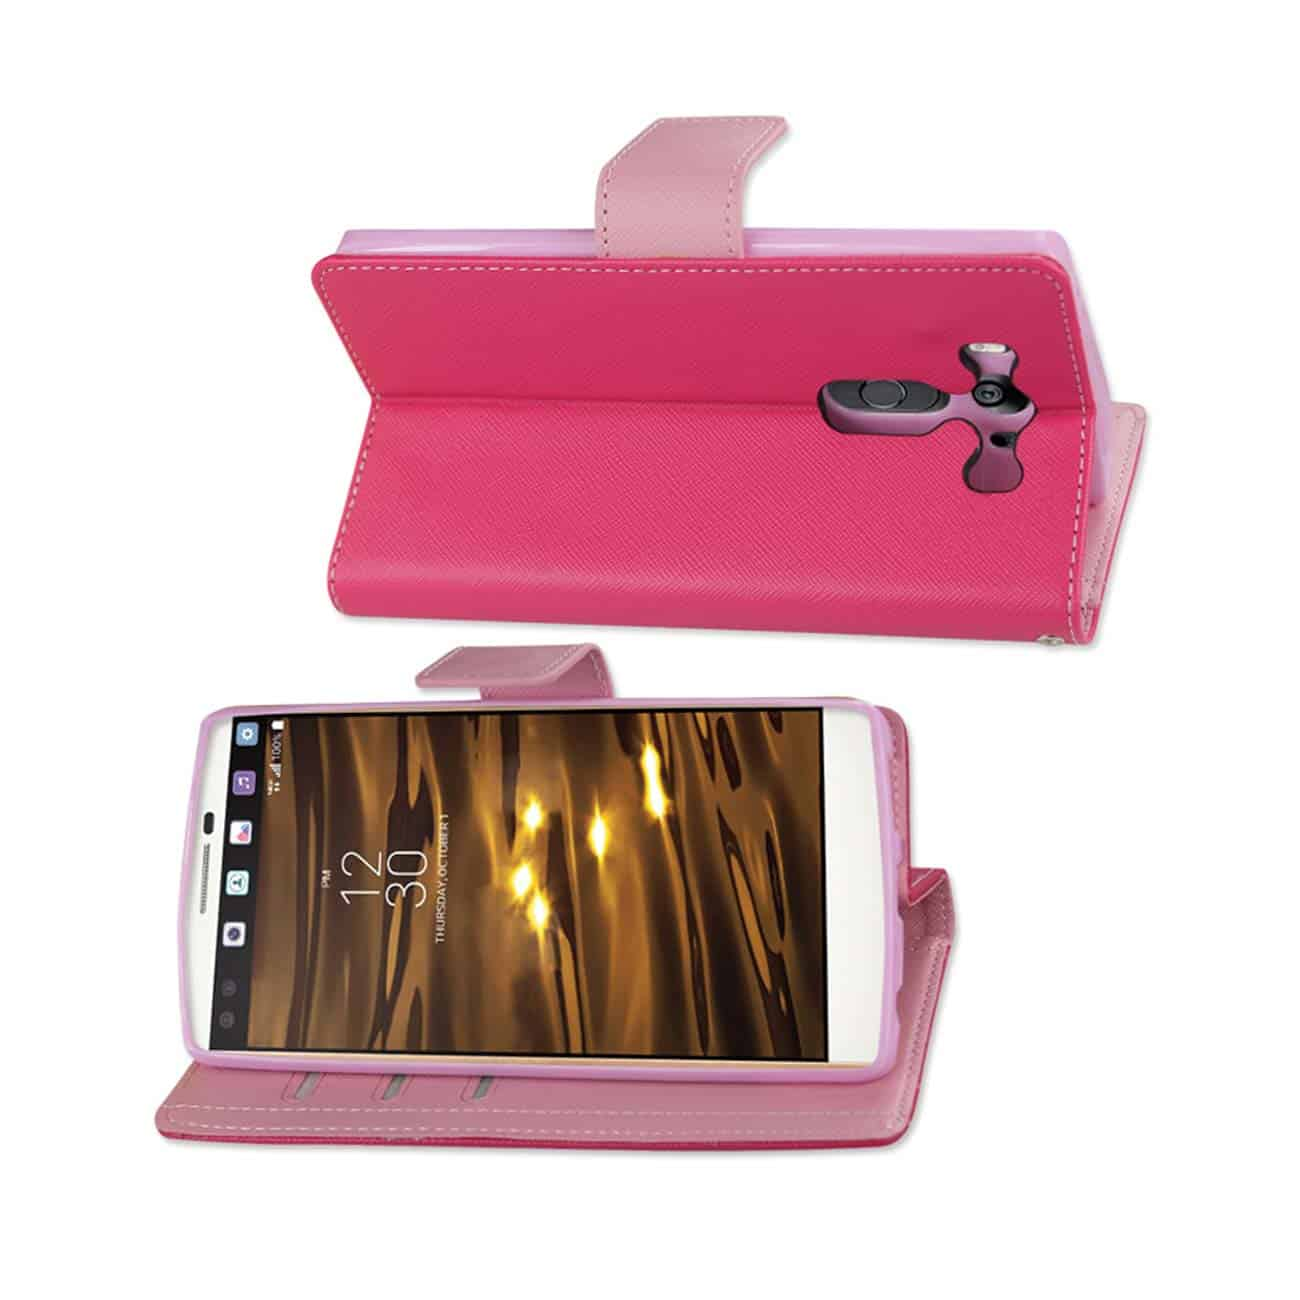 LG V10 3-IN-1 WALLET CASE IN HOT PINK